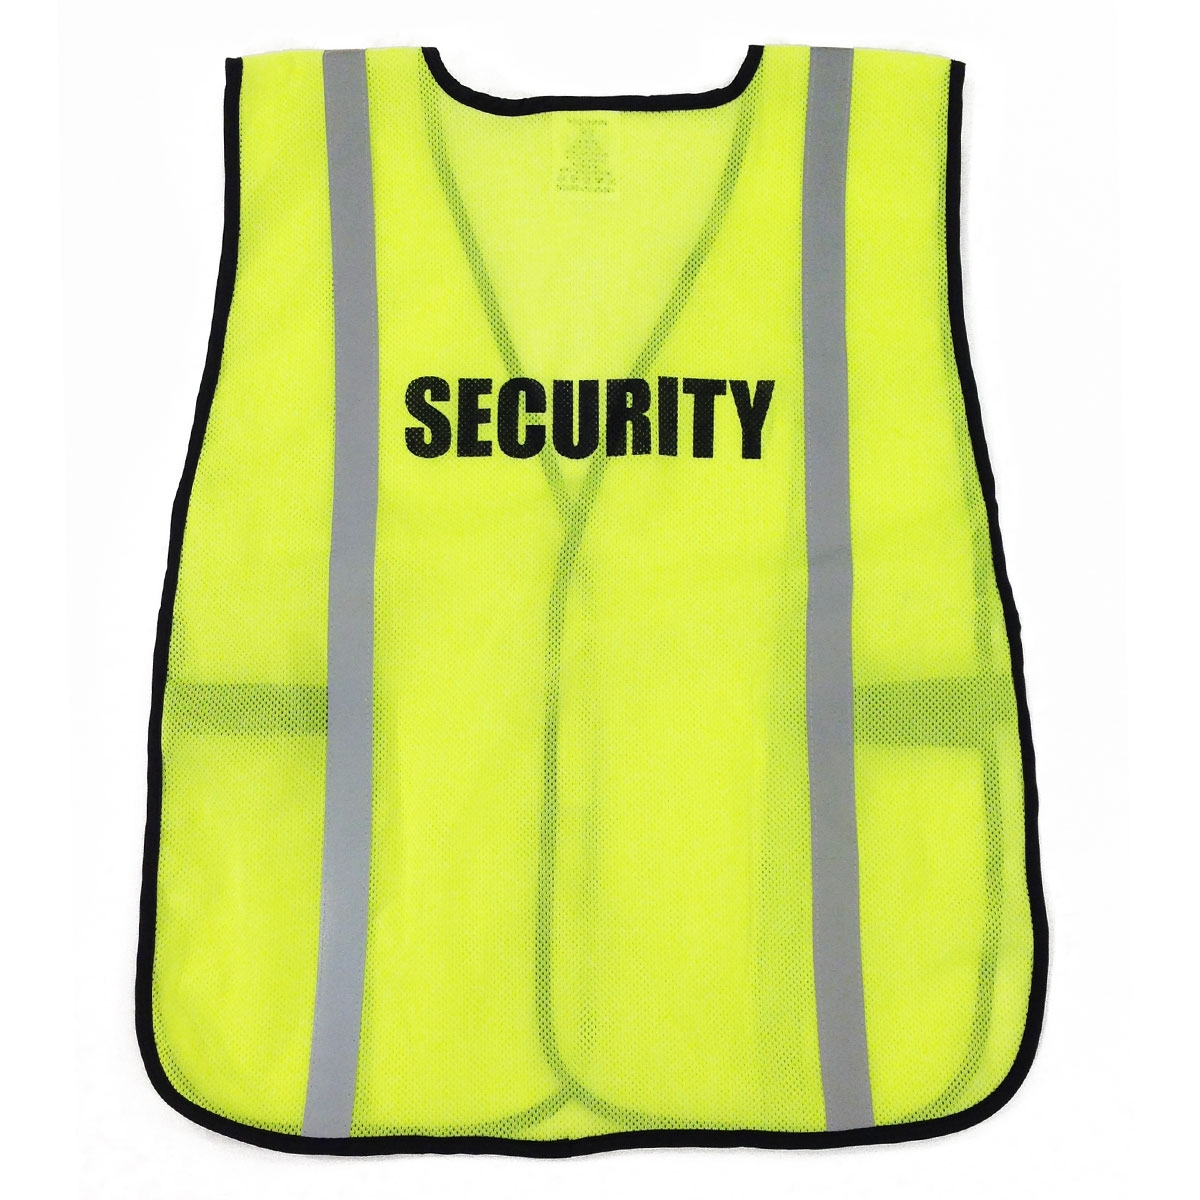 Ergodyne Pre Printed Security Safety Vest Yellow Lime